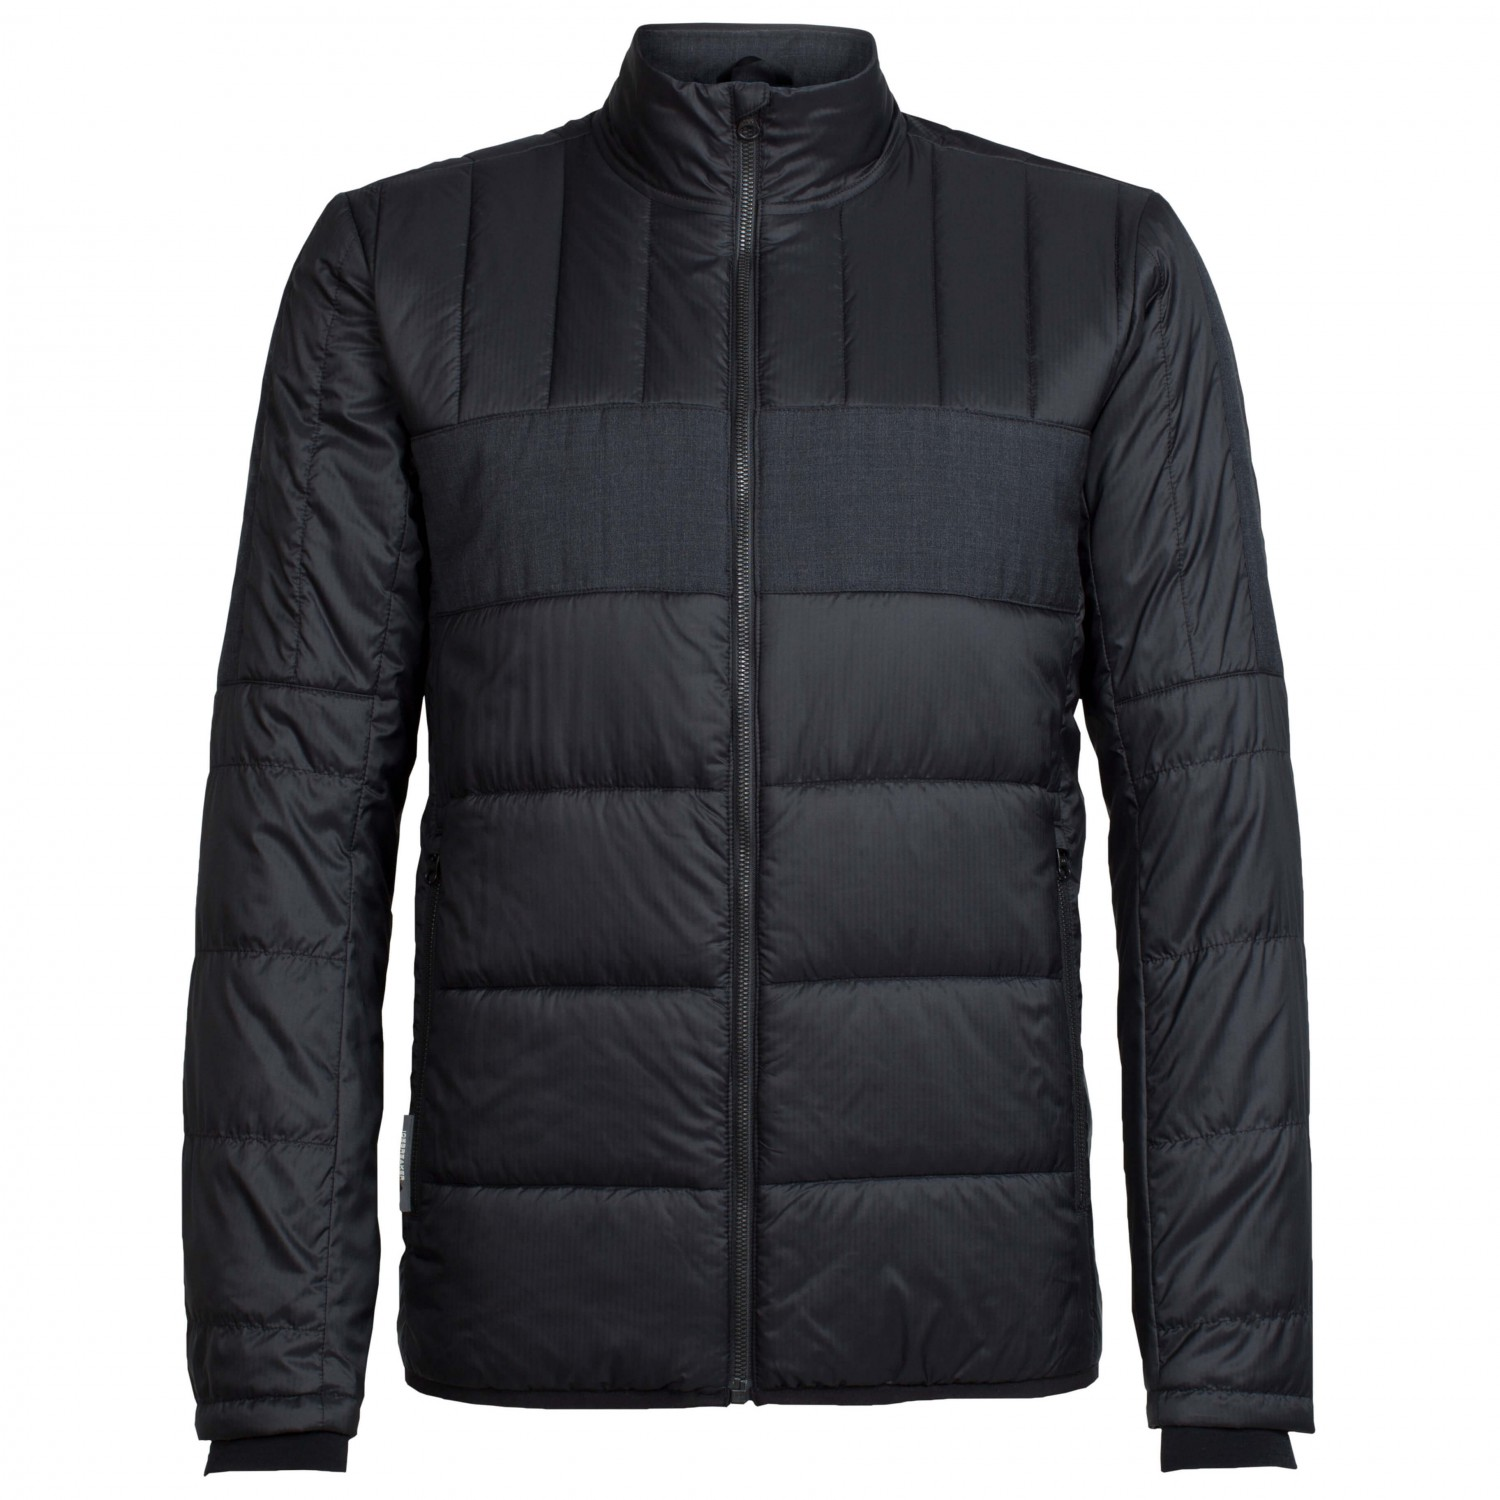 eecf046e28 Icebreaker Stratus X Jacket - Wool Jacket Men's | Buy online |  Alpinetrek.co.uk